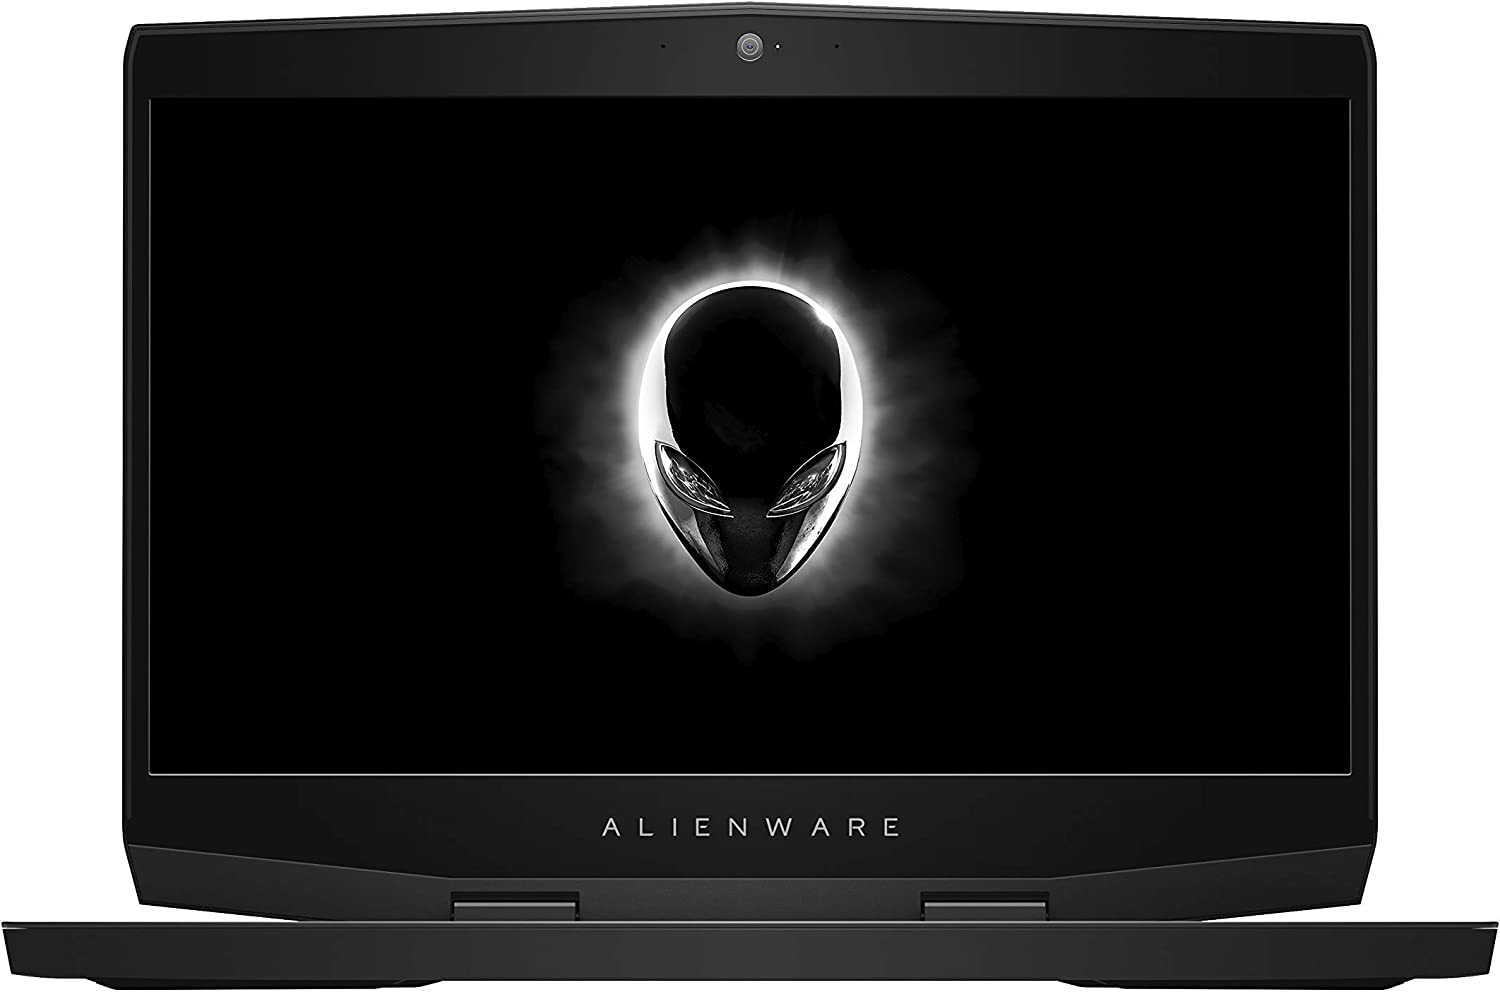 "Alienware M15-15.6"" FHD Gaming Laptop Thin and Light, i7-8750H Processor, NVIDIA GeForce Graphics Card, 16GB RAM, 1TB Hybrid HDD + 128GB SSD, 17.9mm Thick & 4.78lbs (Renewed)"